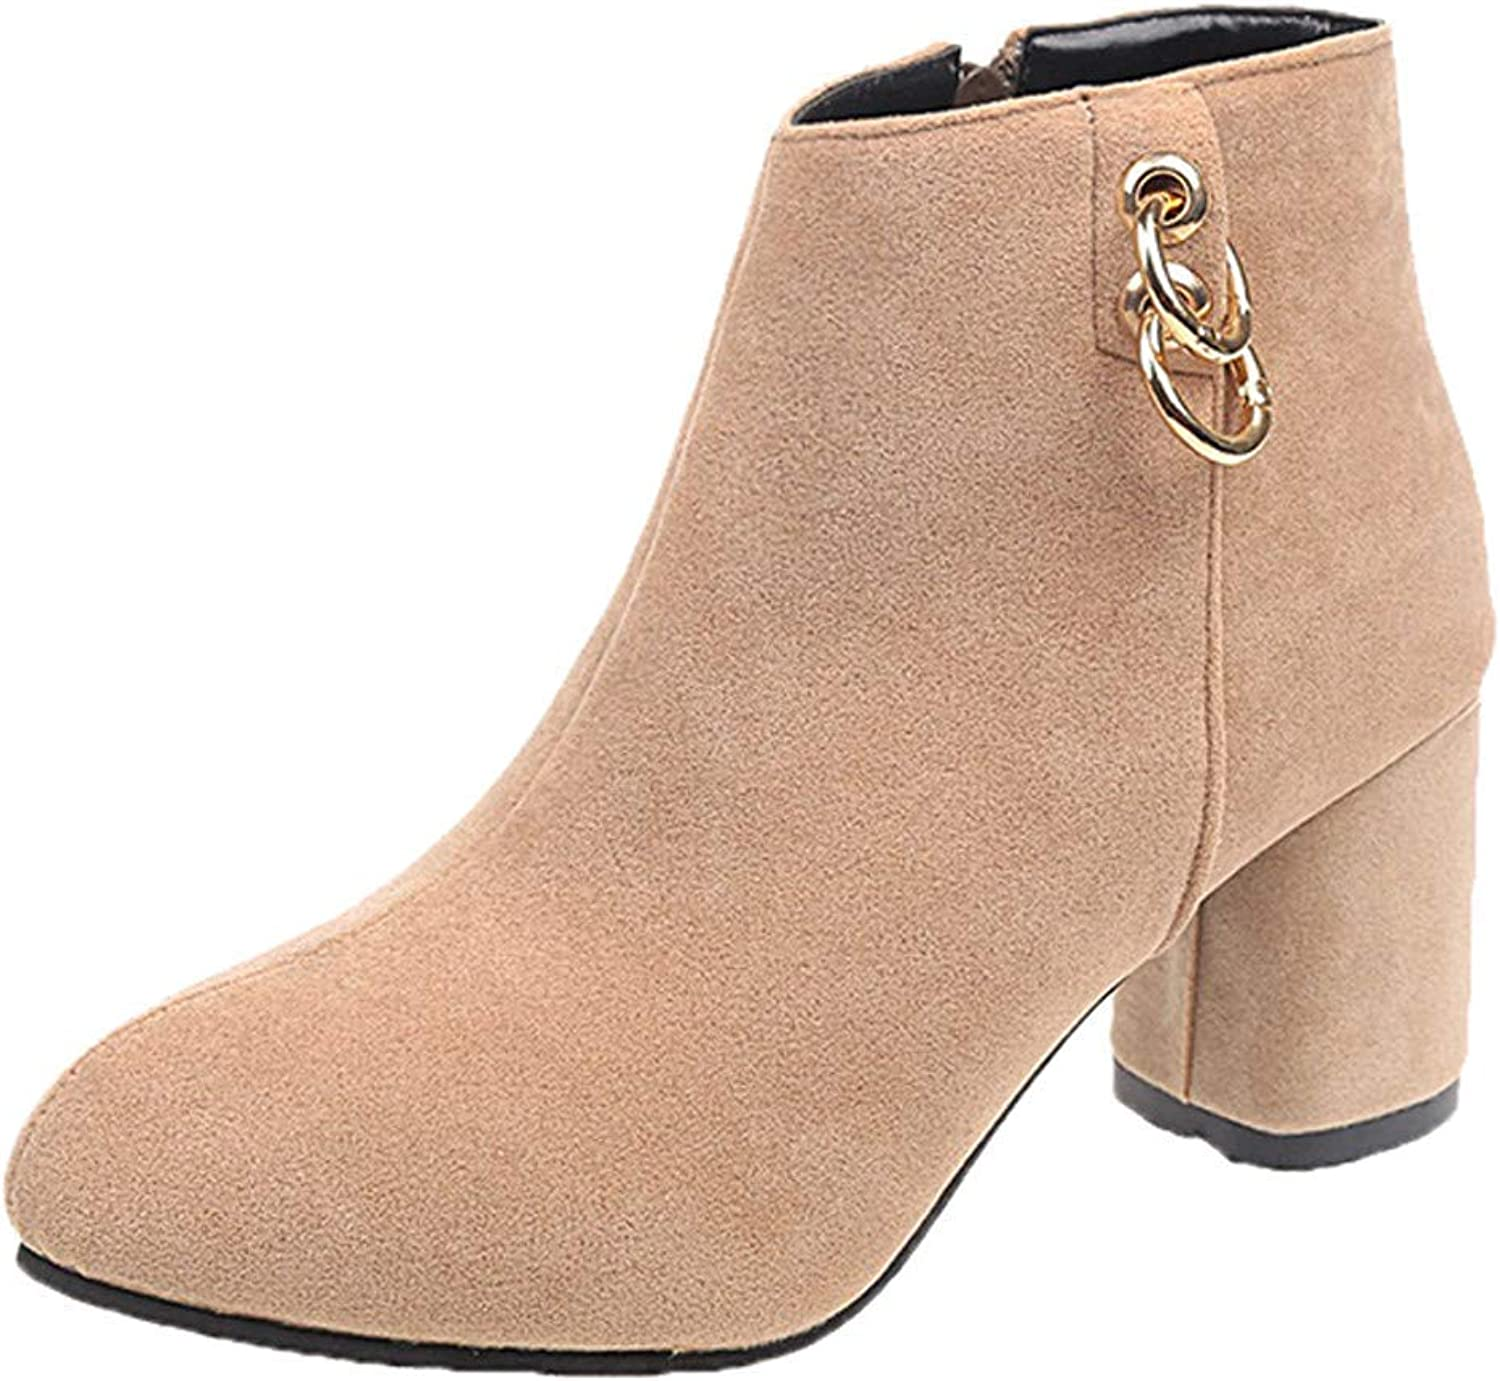 JaHGDU Women's Round Toe High Heel shoes Solid color Suede Martin Boots Zipper Leisure Elegant Cosy Wild Tight Super Quality for Womens